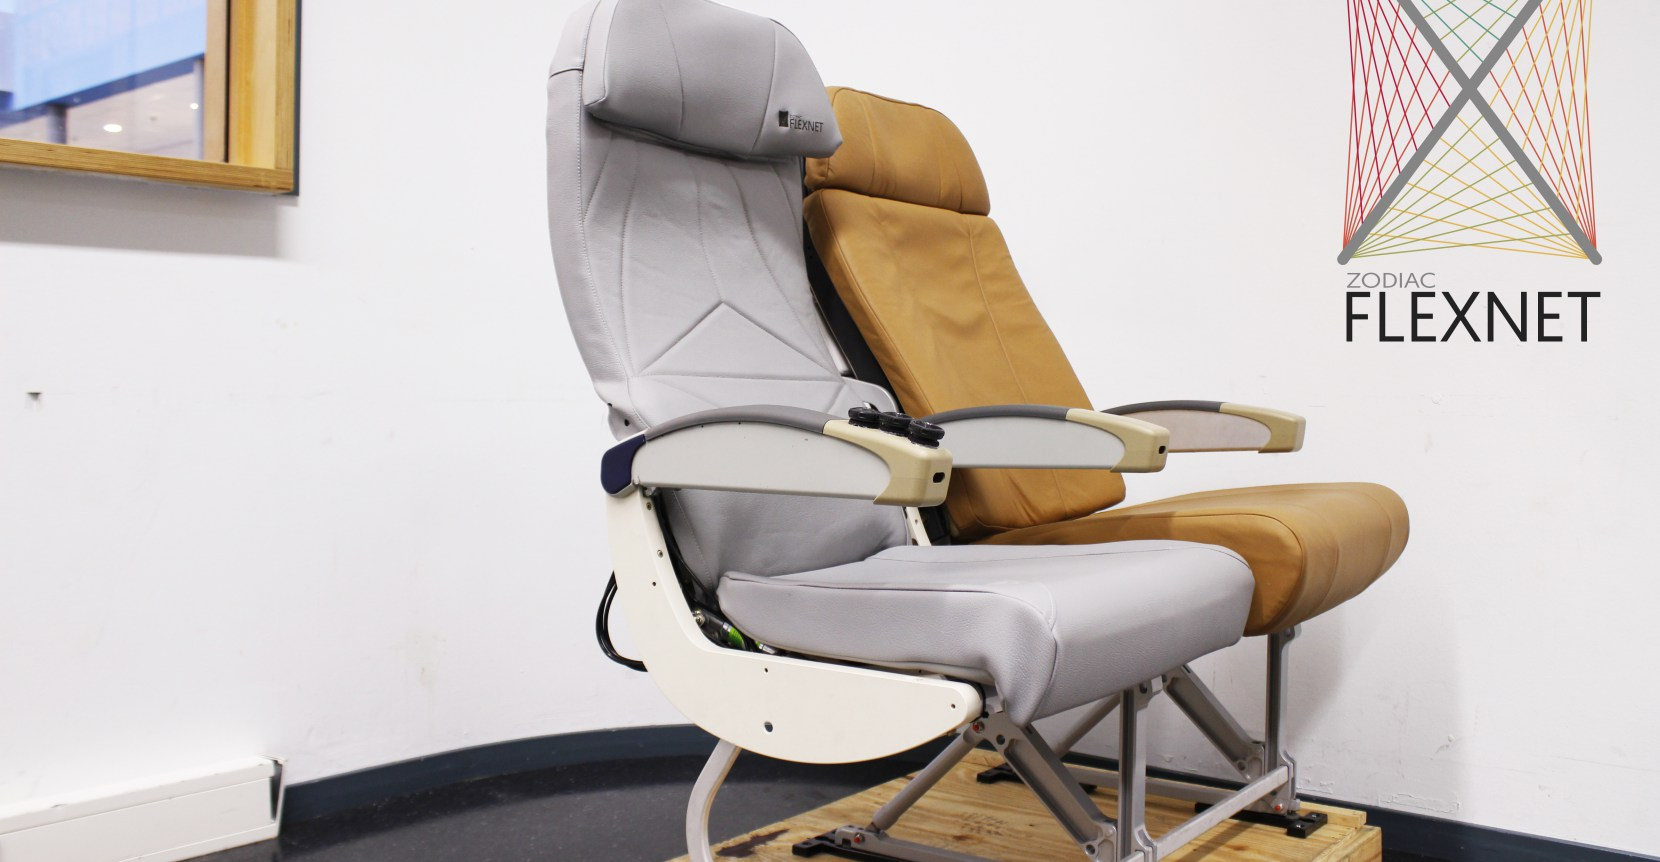 Zodiac_FlexNet-versions-are-lighter-with-thinner-seatbacks